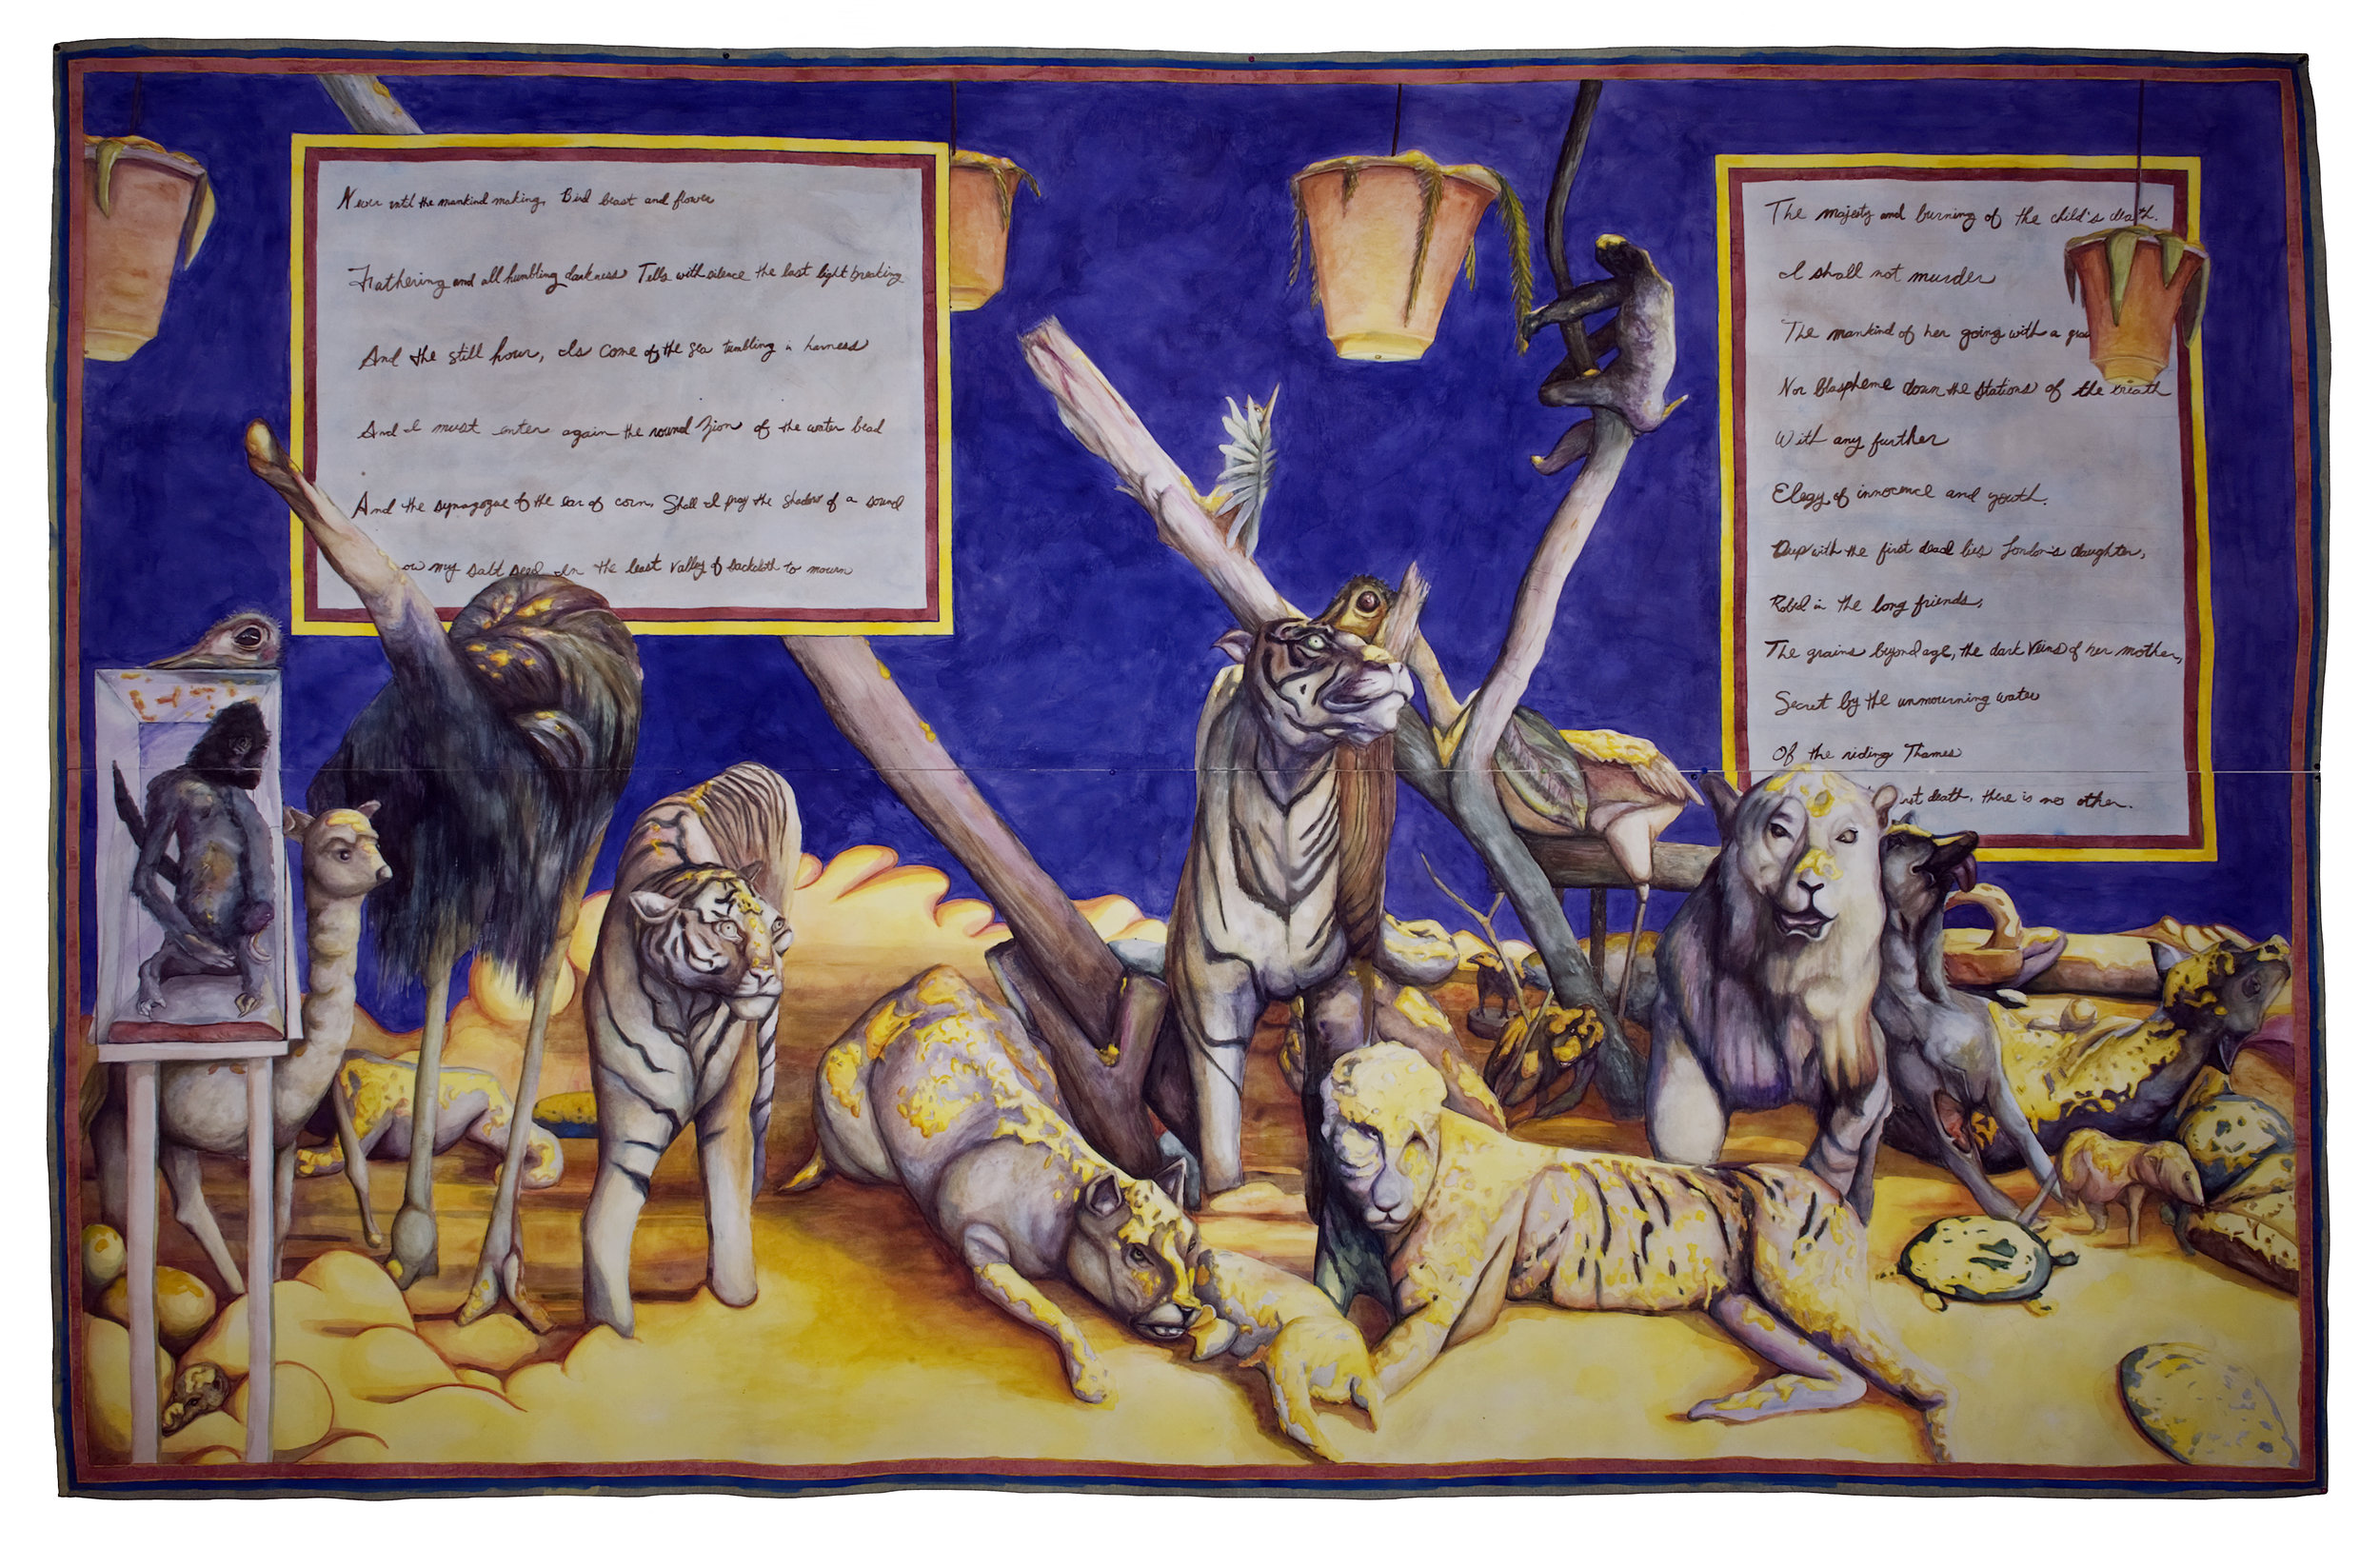 Dominion: After the First Death There is No Other, 80 x 130 inches, (215 × 330cm), watercolor on paper, 2011